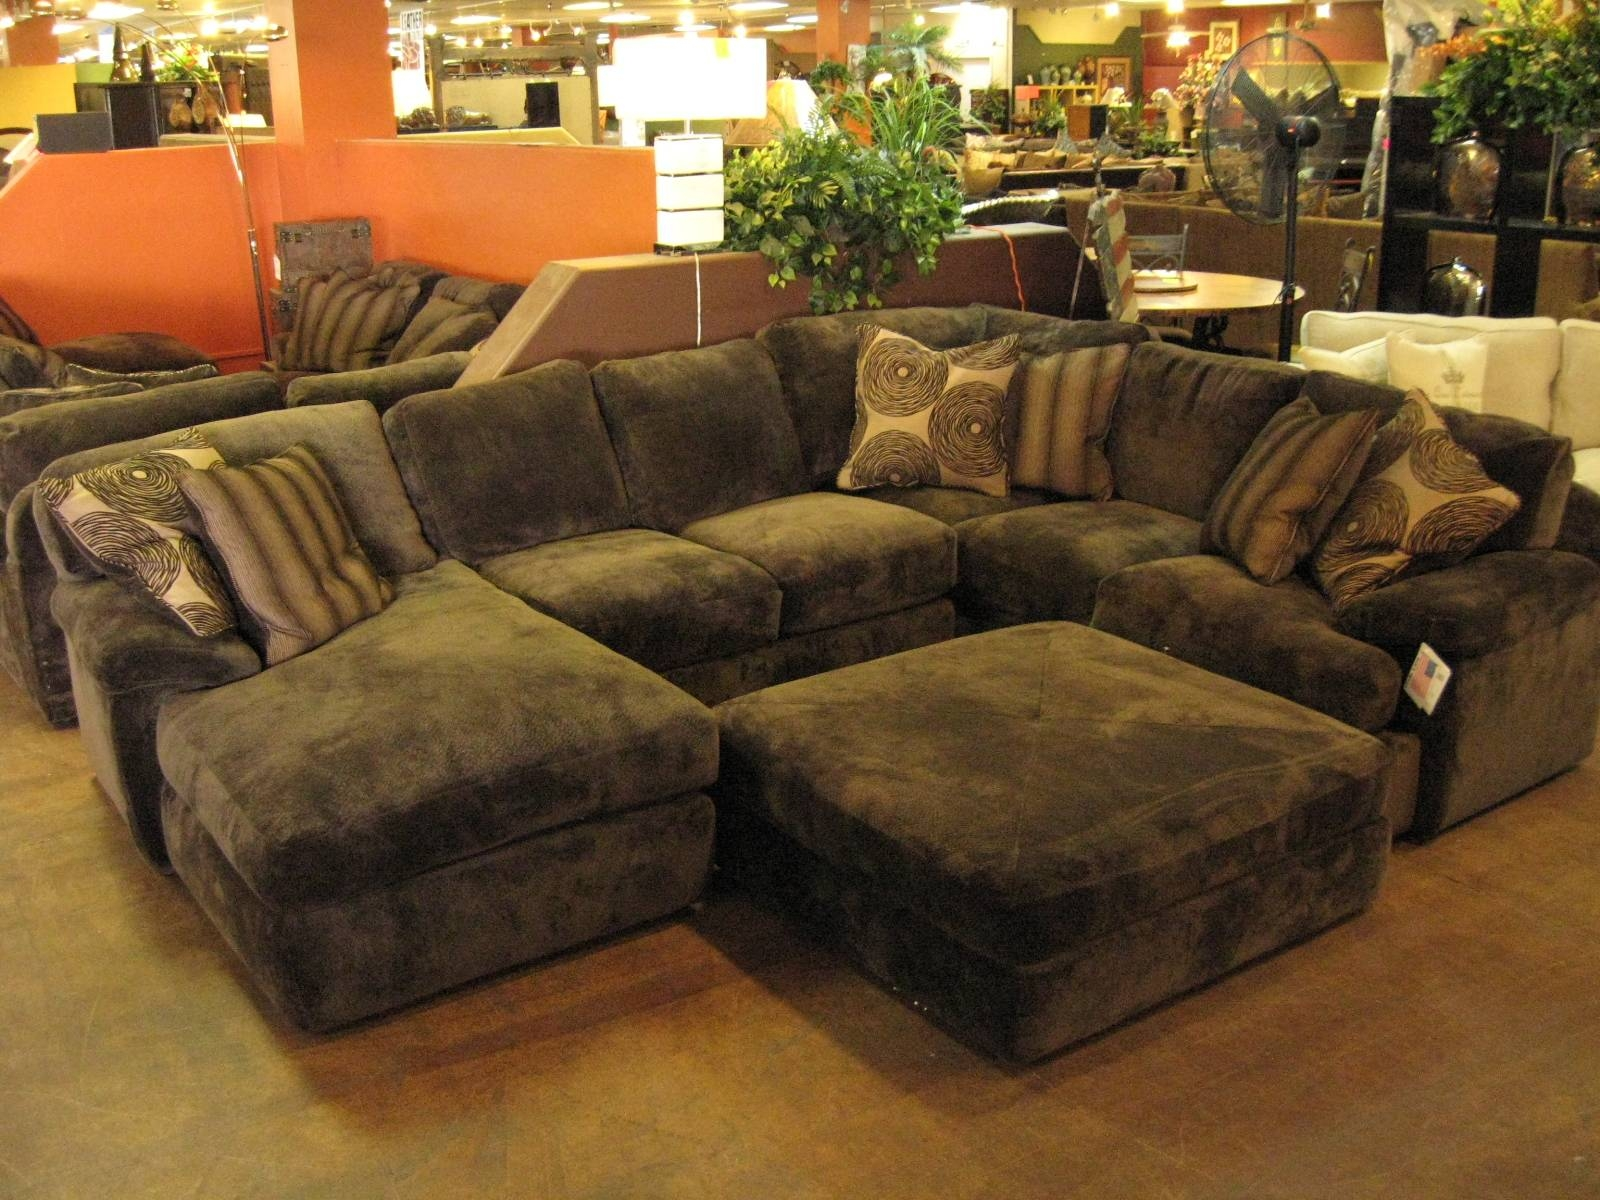 Cozy Sofa Pit Sectional 66 In Individual Sectional Sofa Pieces throughout Individual Sectional Sofas Pieces (Image 3 of 15)